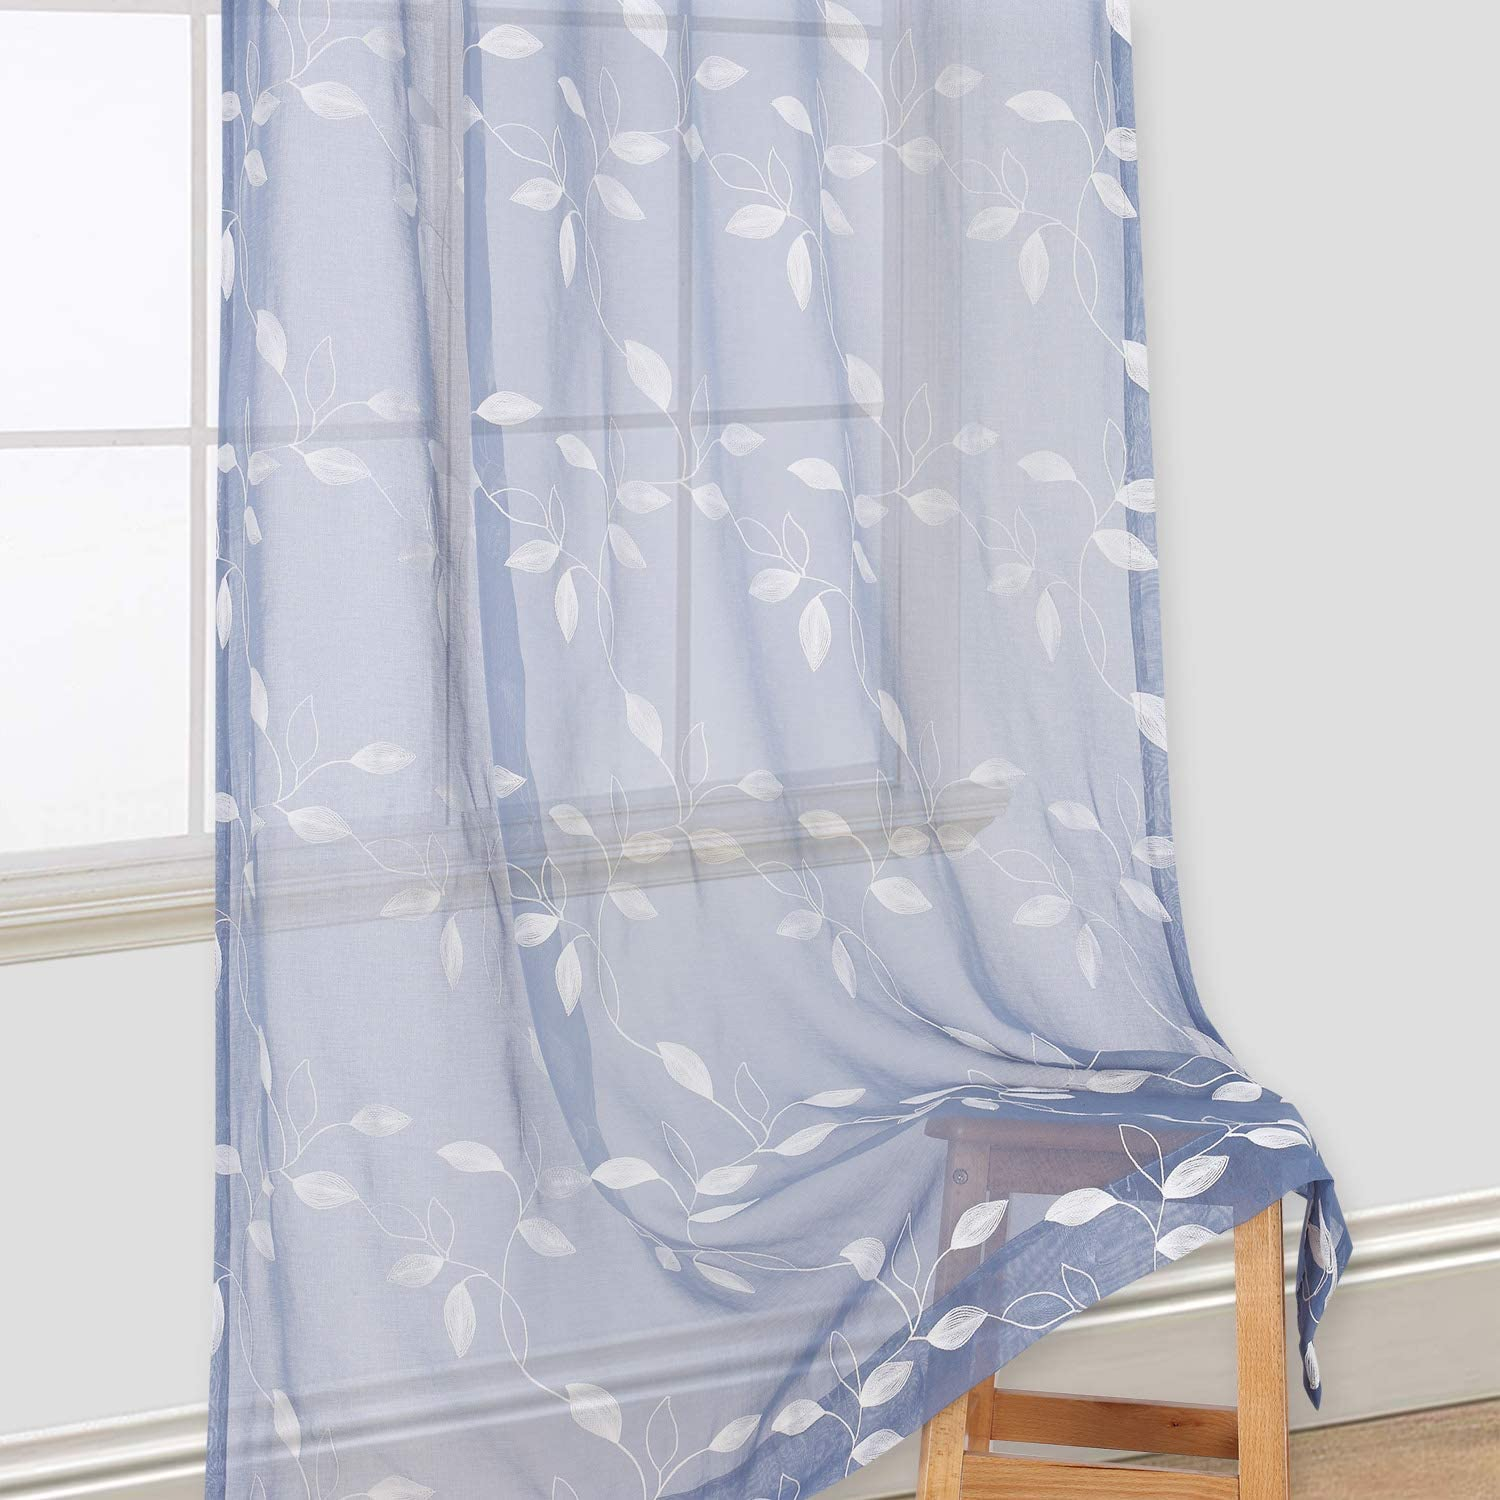 Embroidered Blues on Linen Curtain Valance